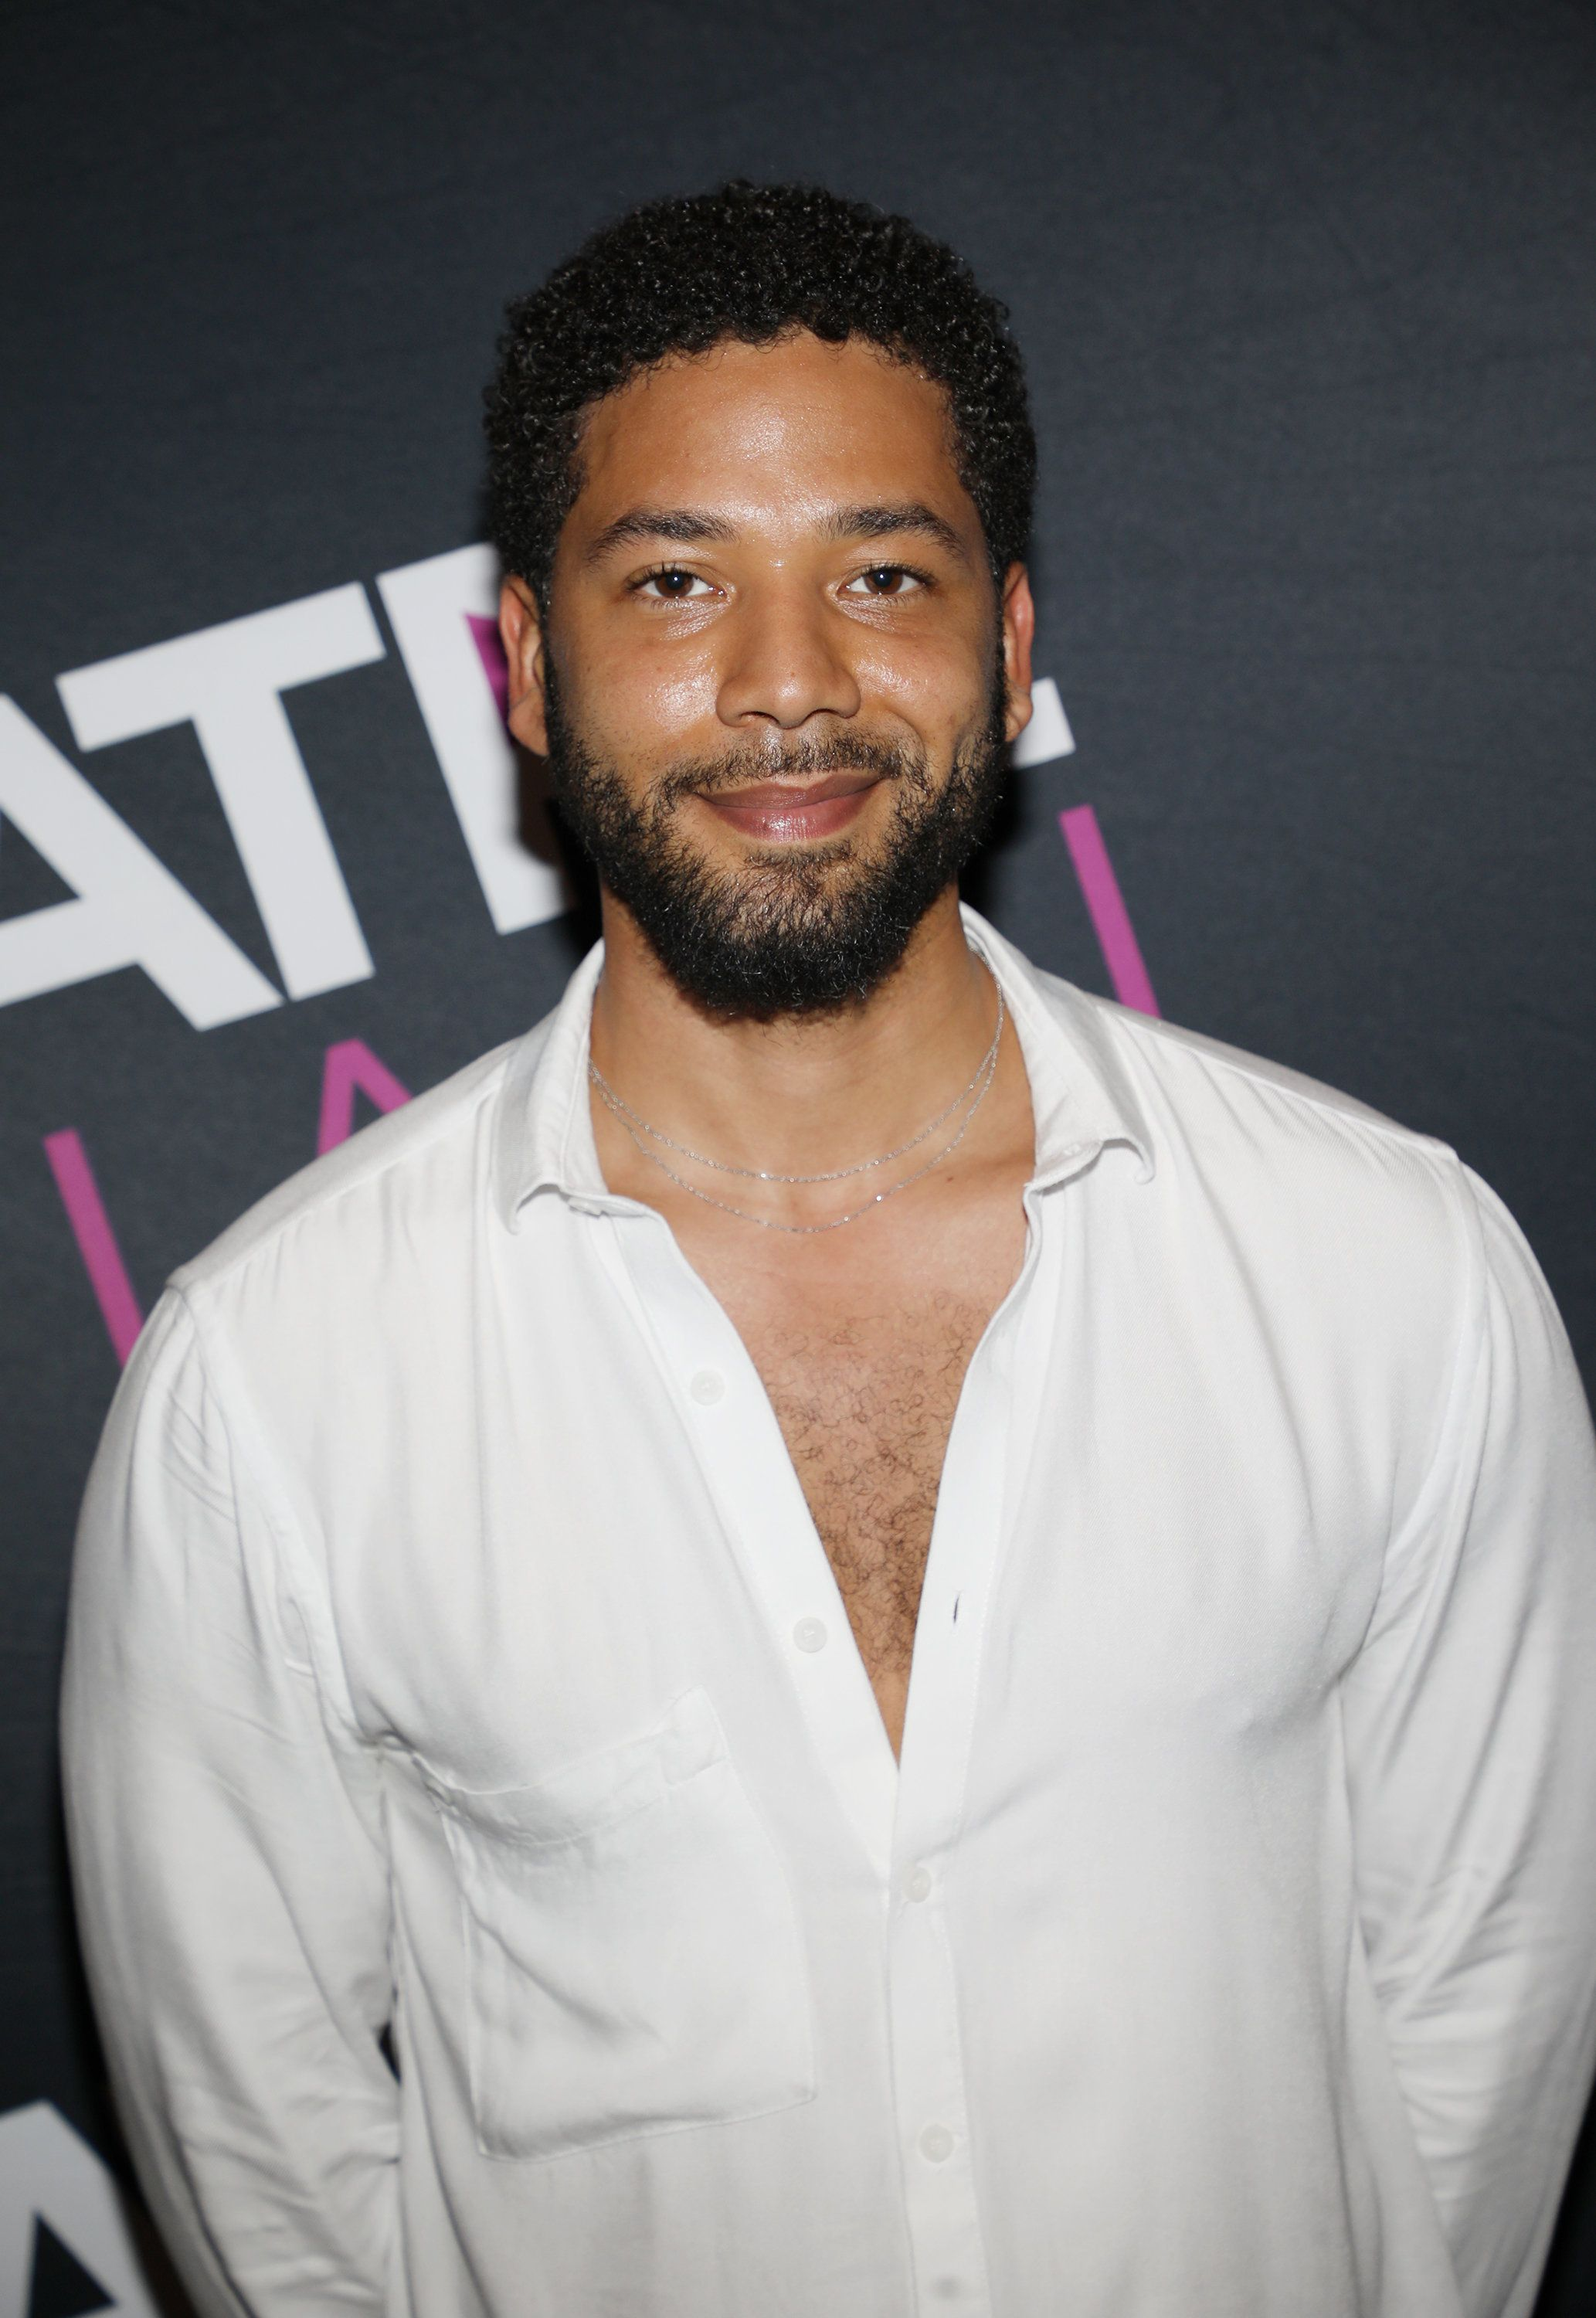 L'agression de Jussie Smollet, acteur noir et ouvertement gay, provoque un torrent